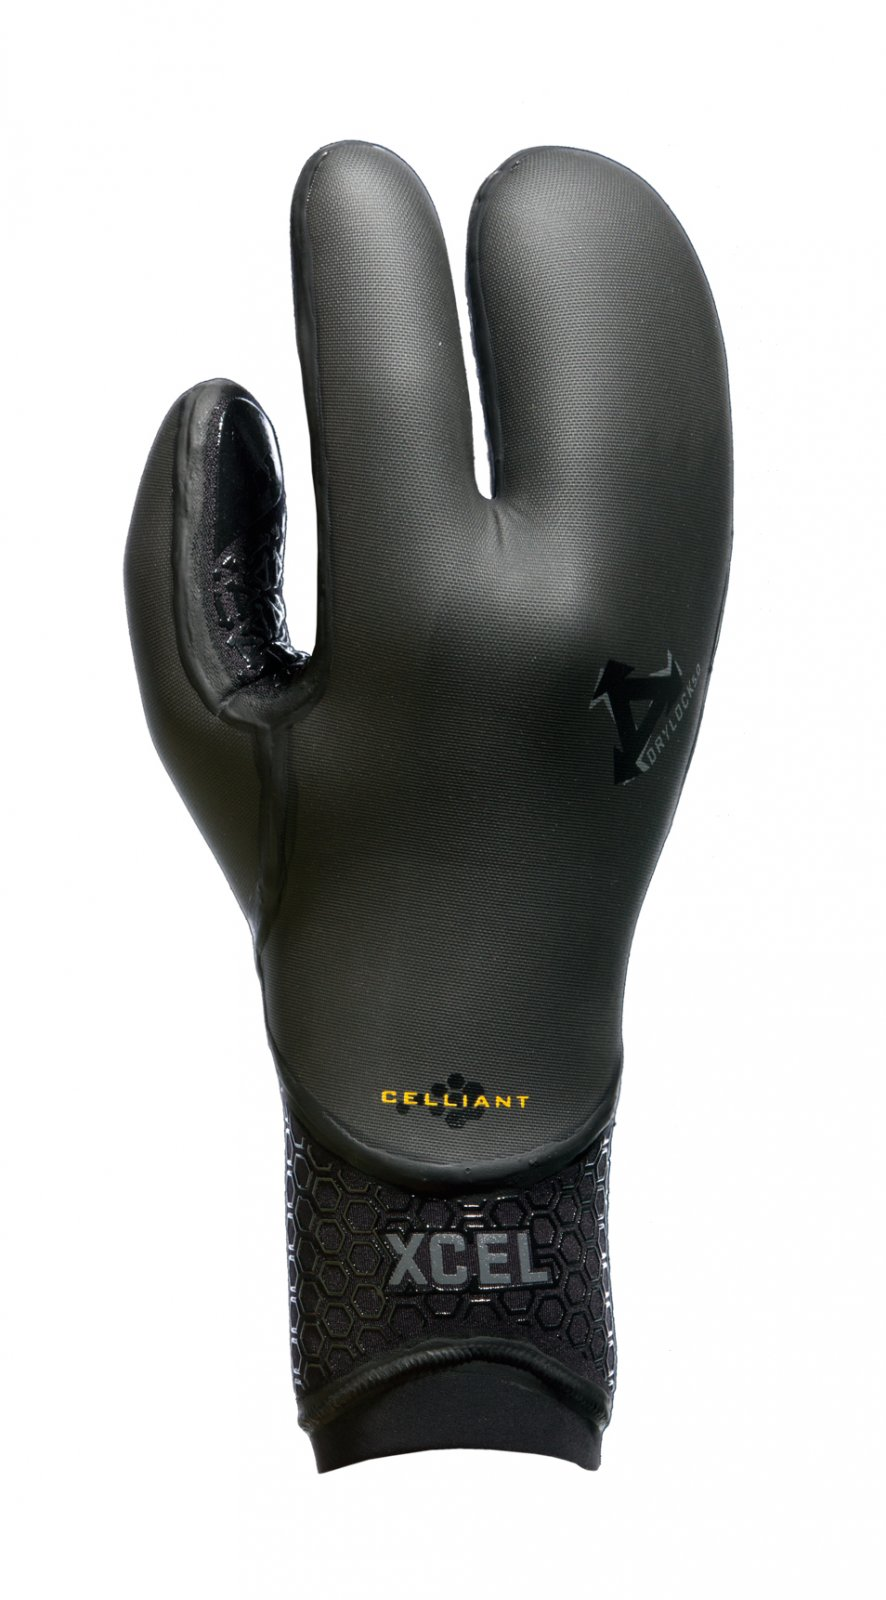 Xcel Drylock TDC 3-Finger Glove 5mm